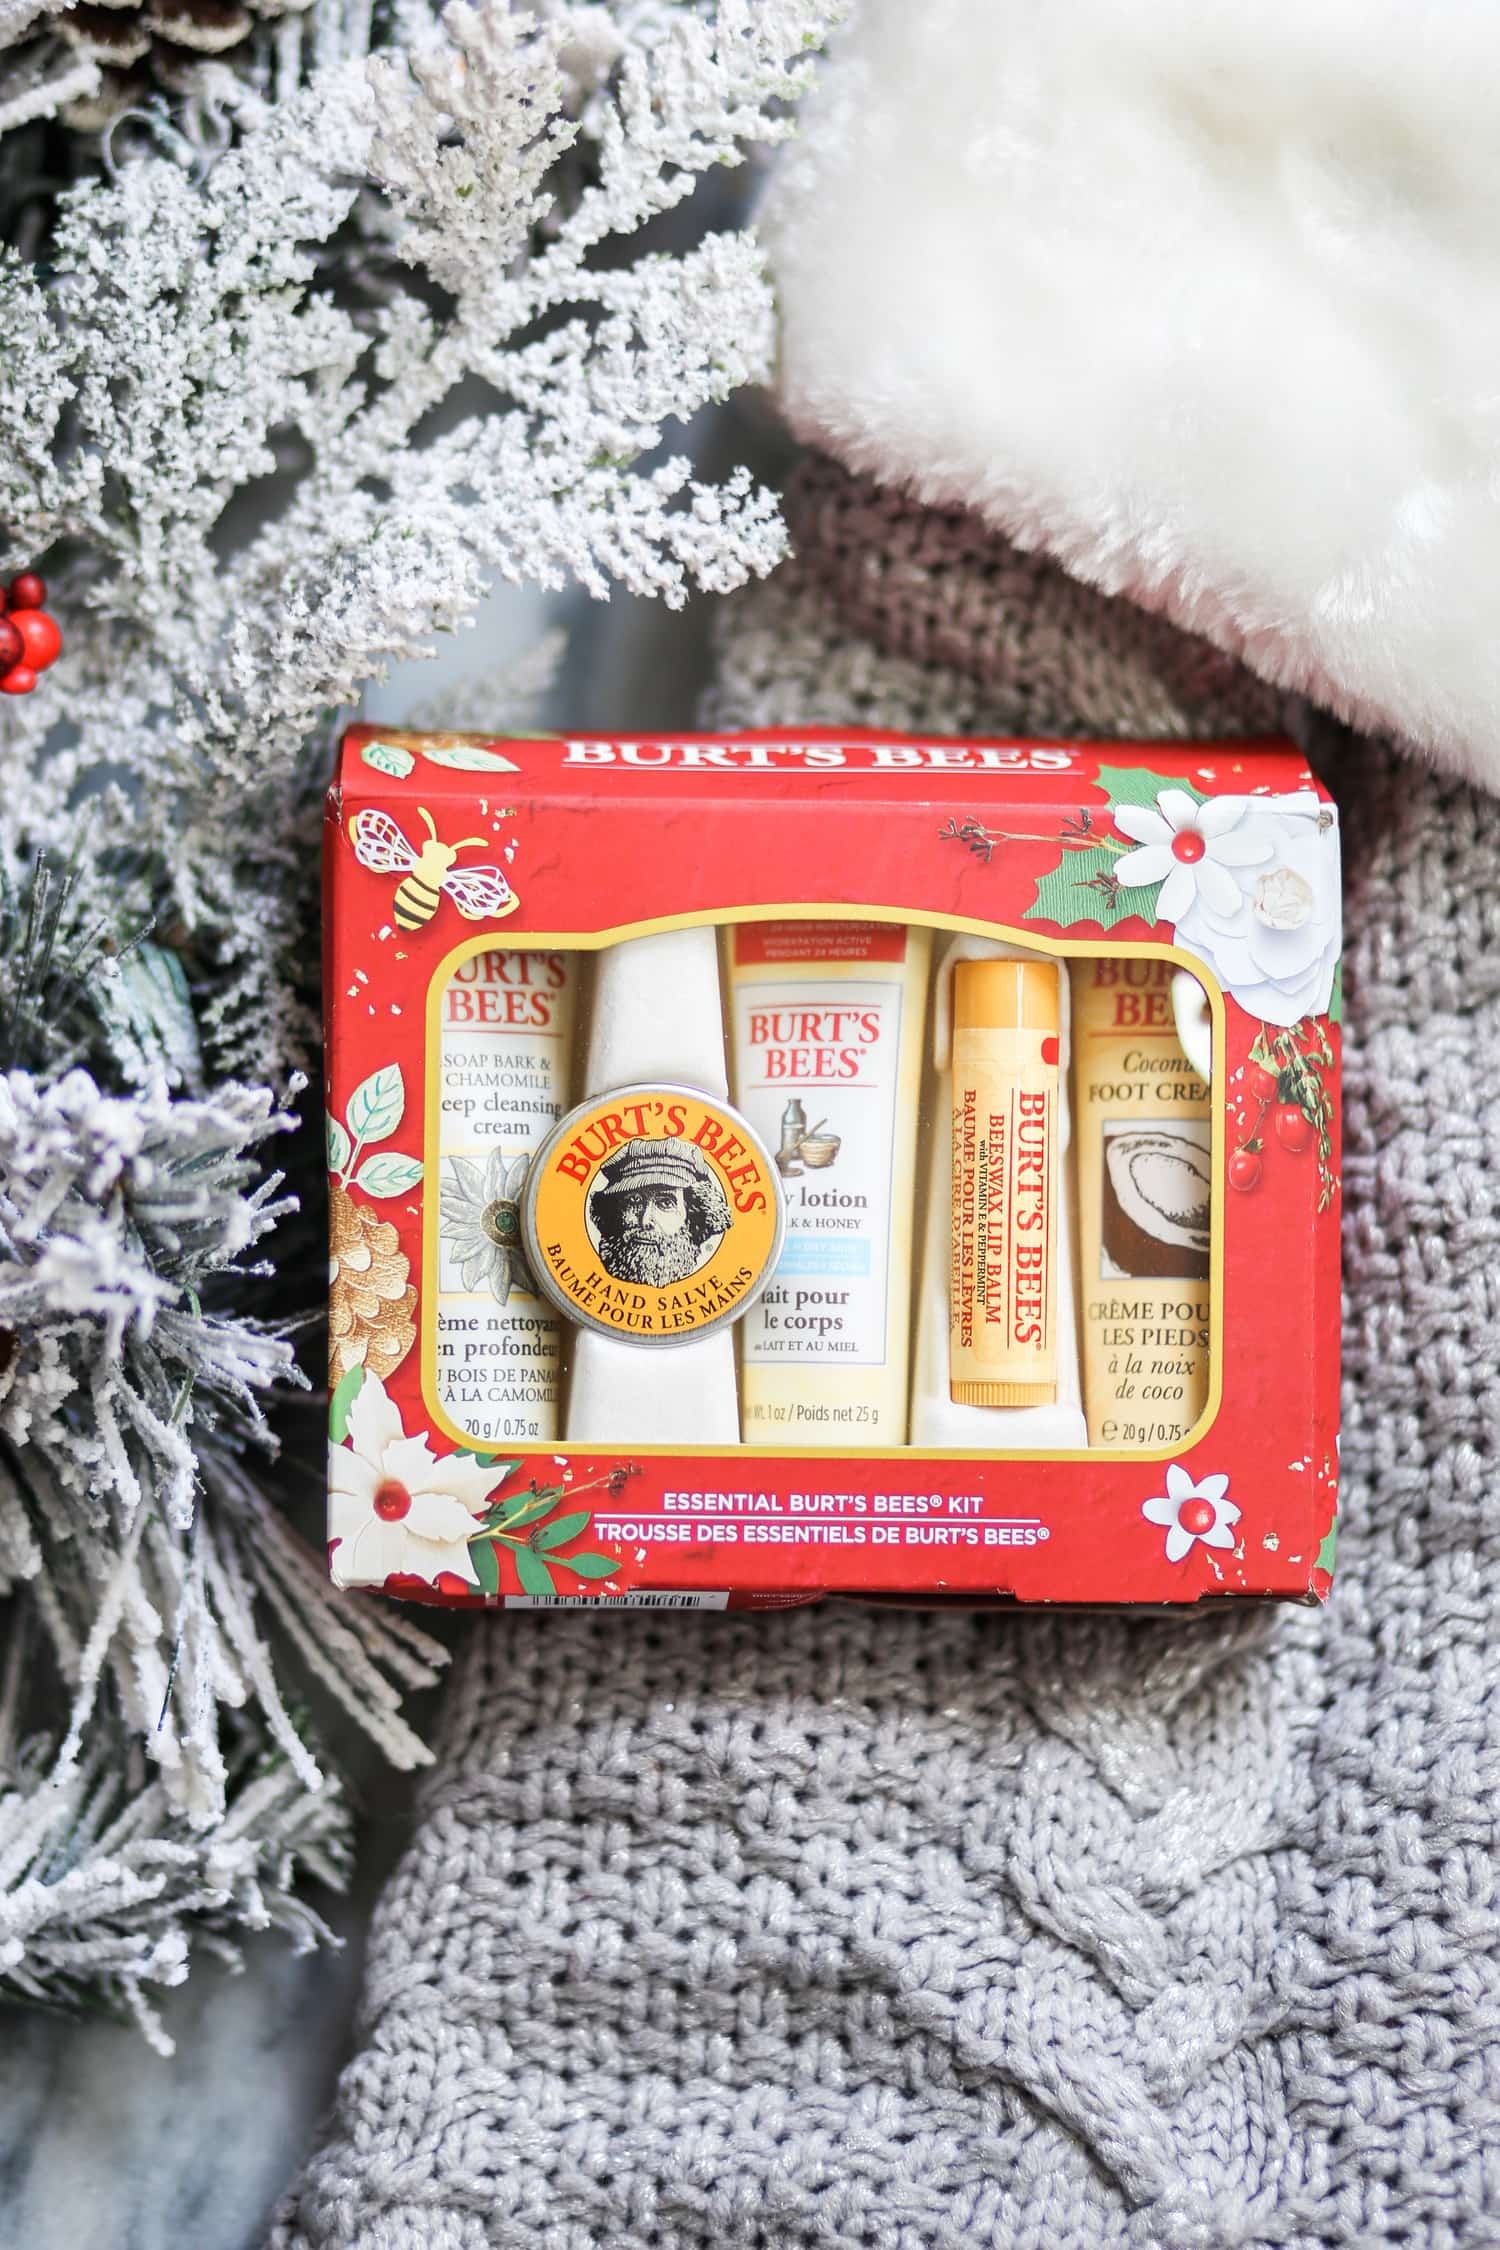 Christmas Gift Ideas Under 10.My Go To Burt S Bees Christmas Gifts Under 10 Ashley